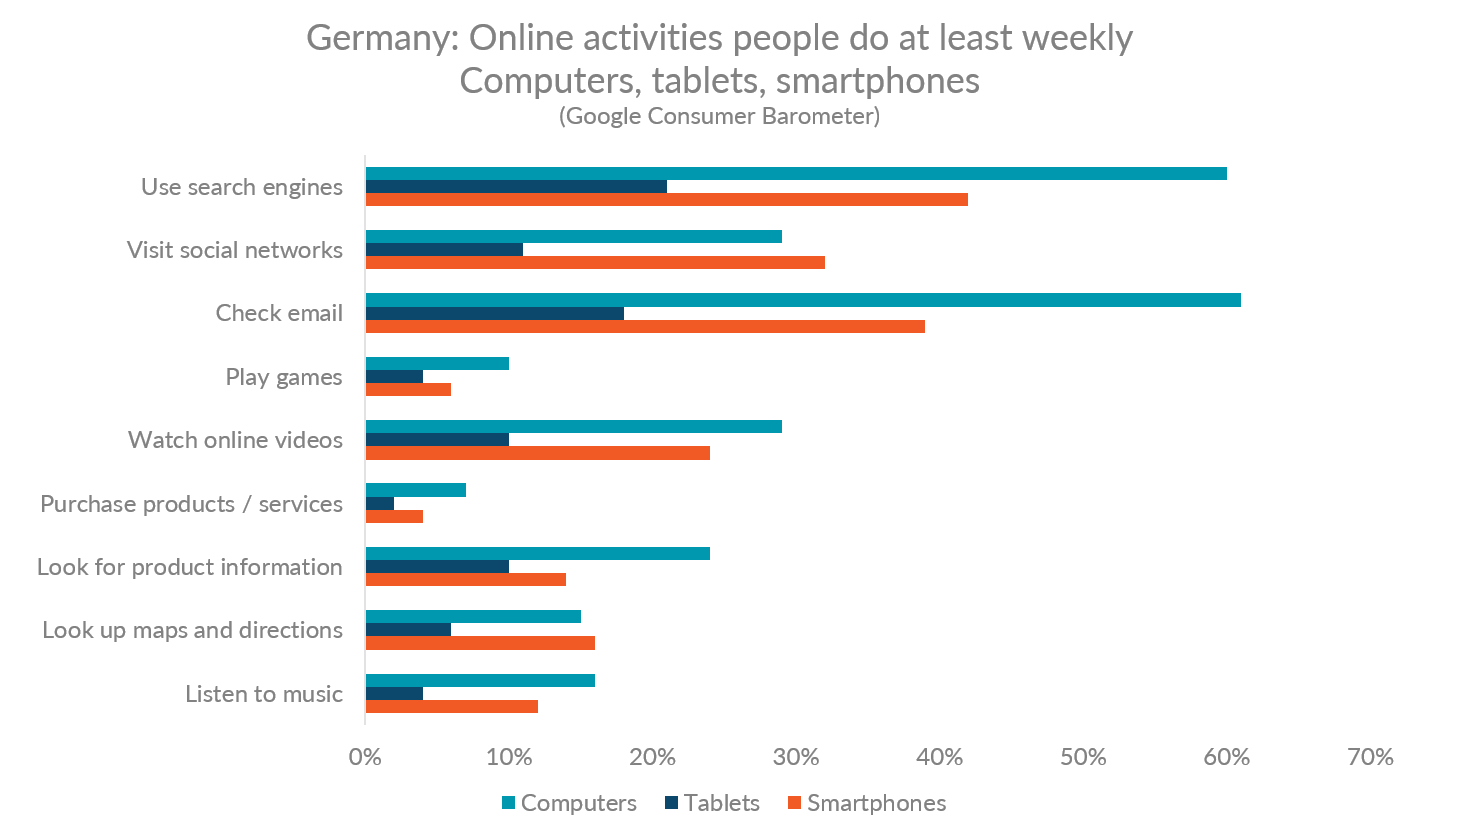 Chart showing weekly online activities by device in Germany